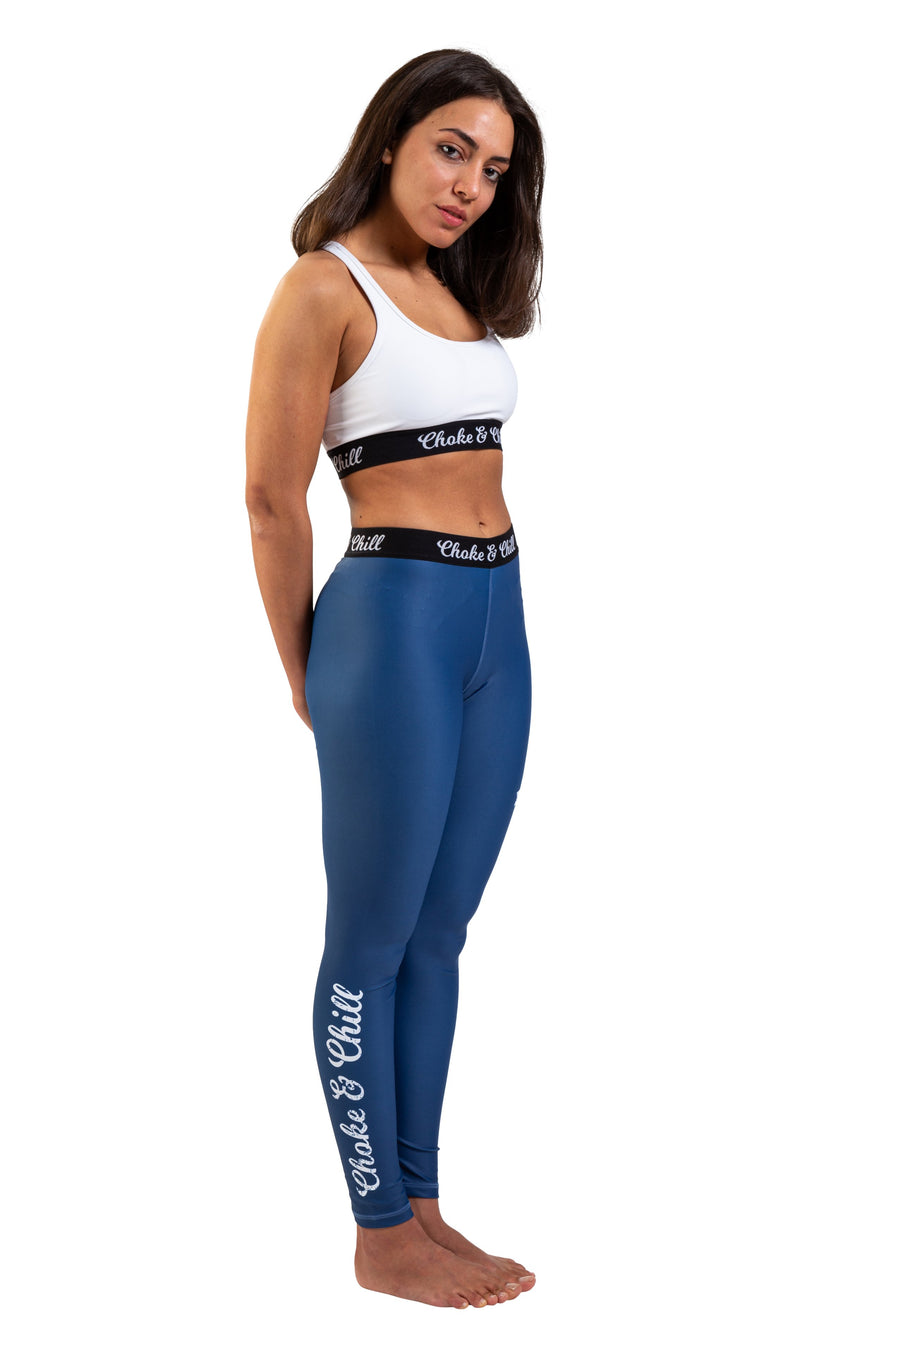 choke&chill Sport leggins spats blue sports bra white fightwear training female athlete fighter  BJJ No-Gi Grappling Brazilian Jiu Jitsu MMA Kampfsport Martial Arts